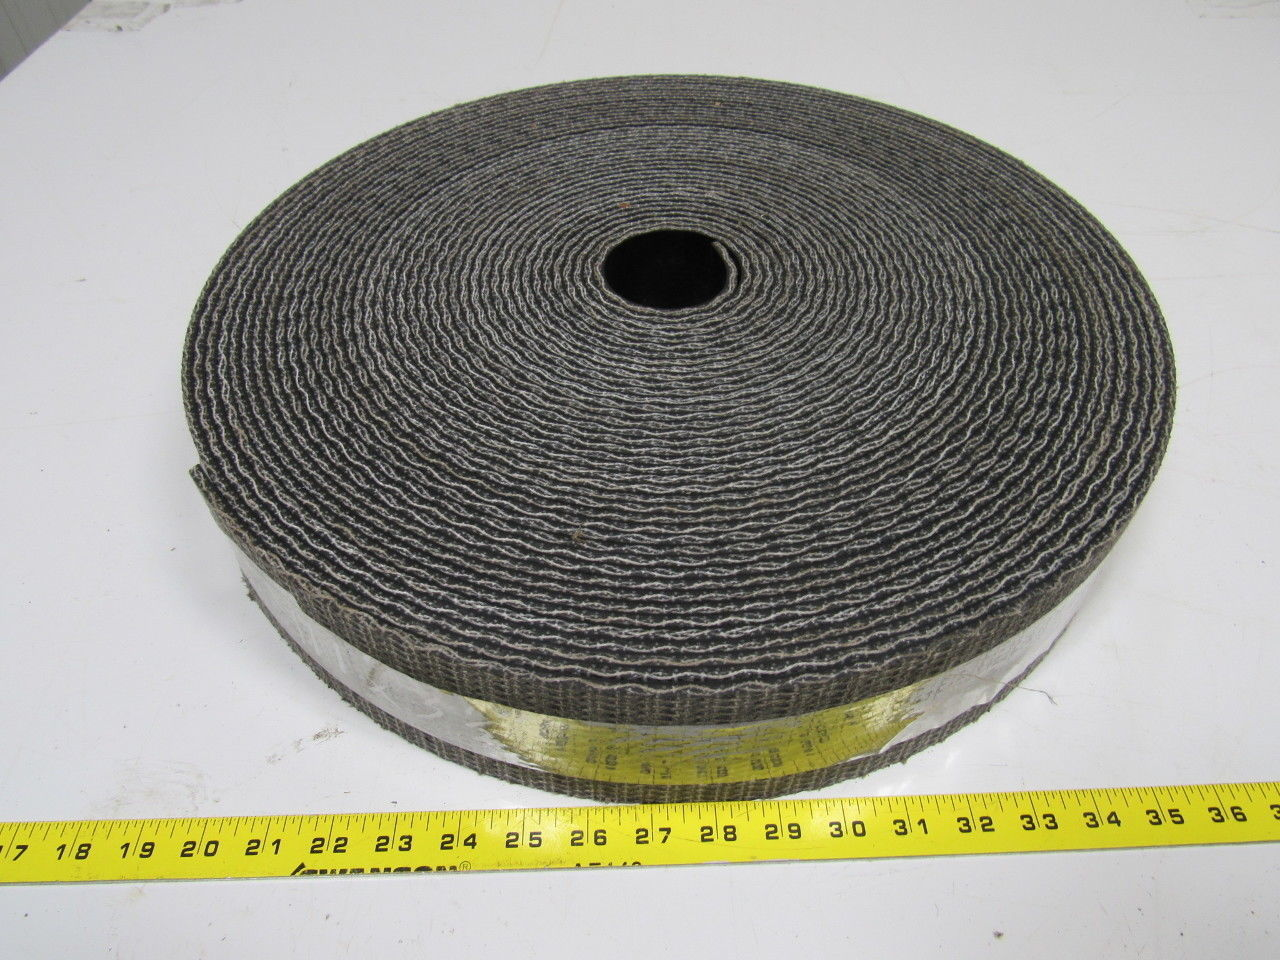 "1 ply black interwoven conveyor belt 111ft x 3.5"" x 0.205"" thick"